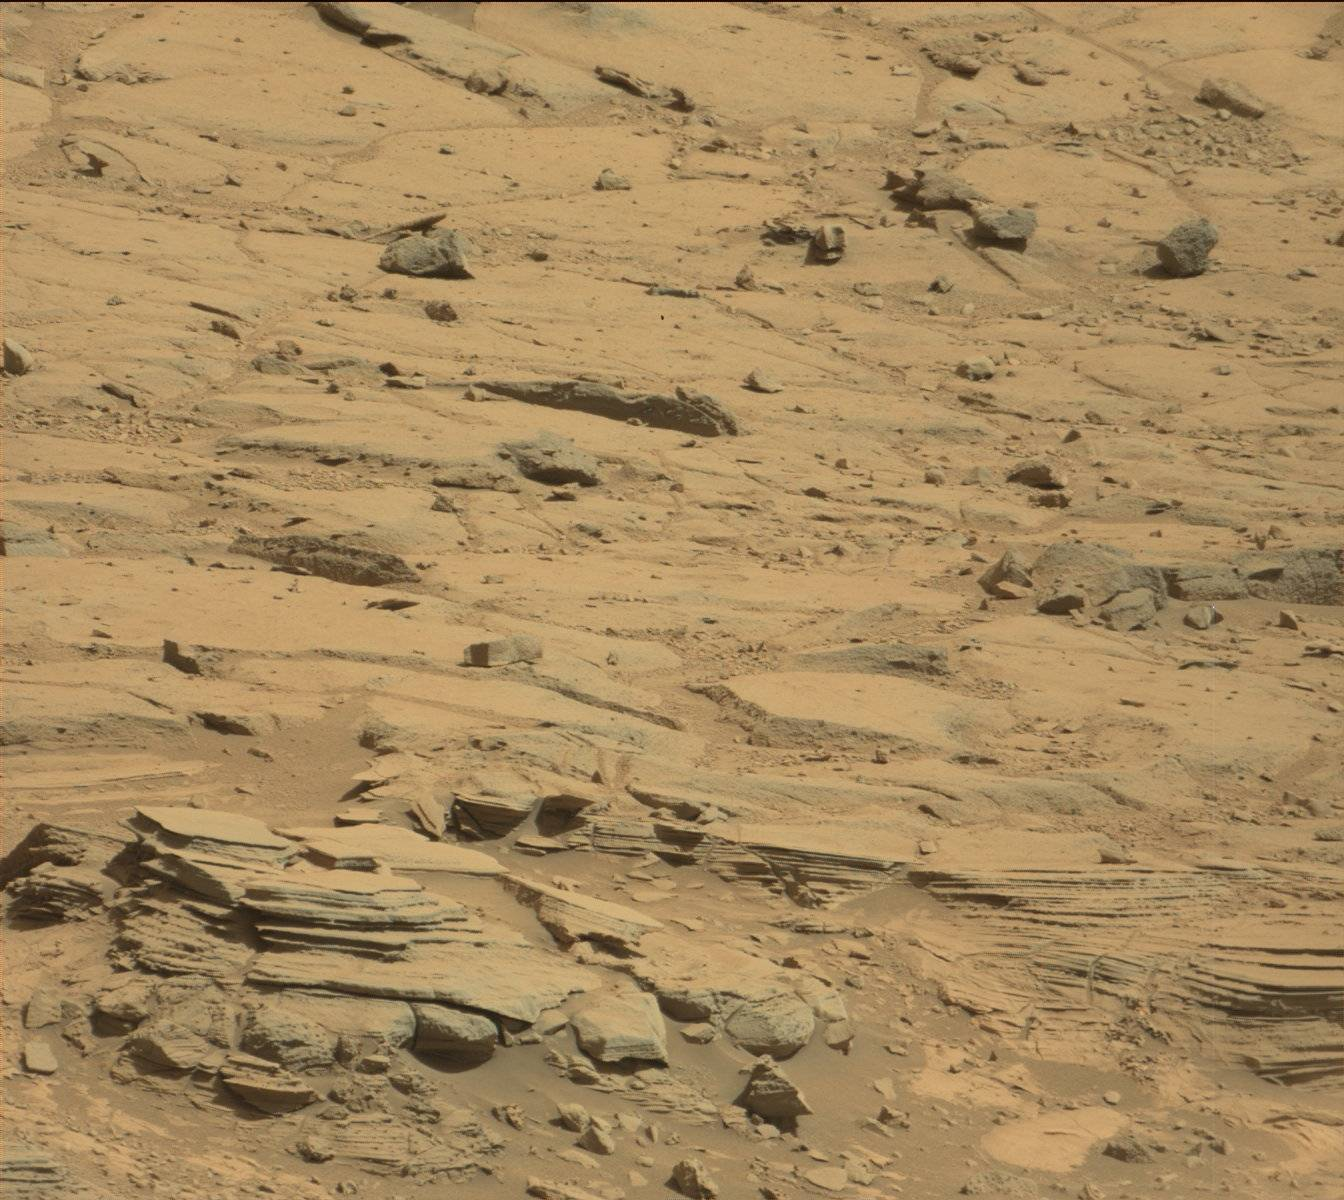 Nasa's Mars rover Curiosity acquired this image using its Mast Camera (Mastcam) on Sol 439